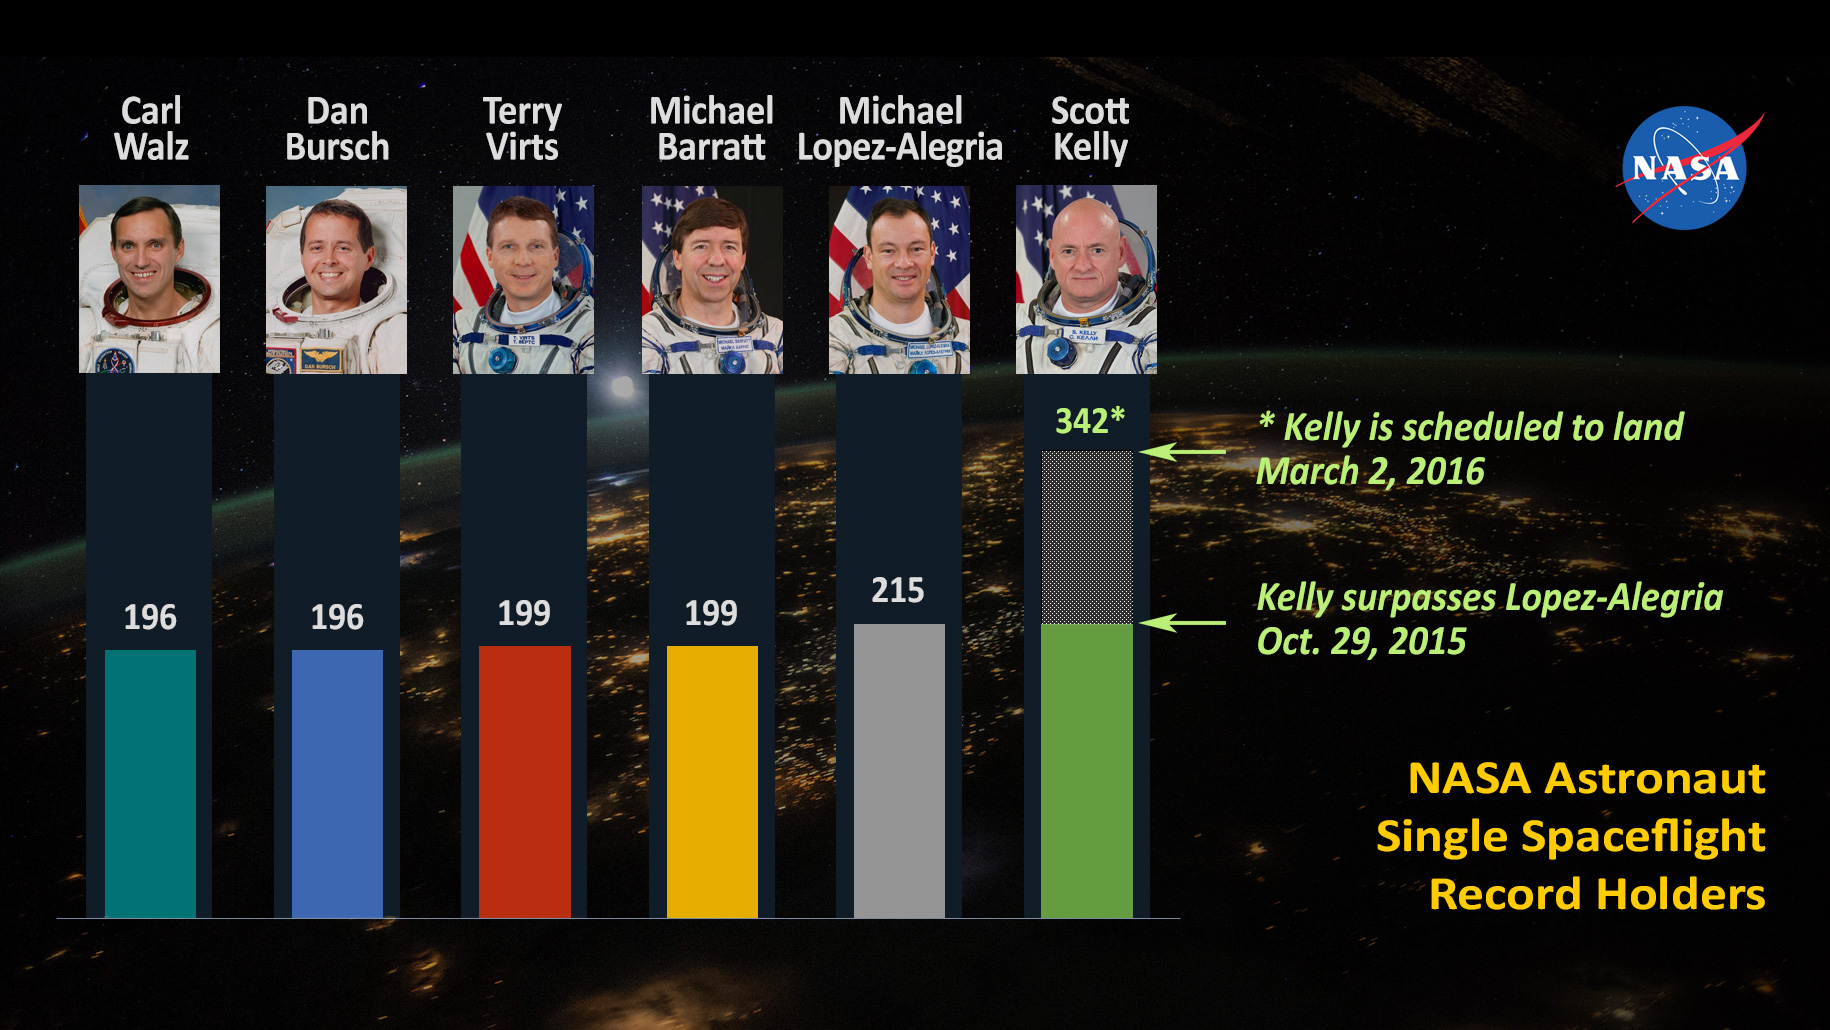 NASA Astronauts Single Spaceflight Record Holders